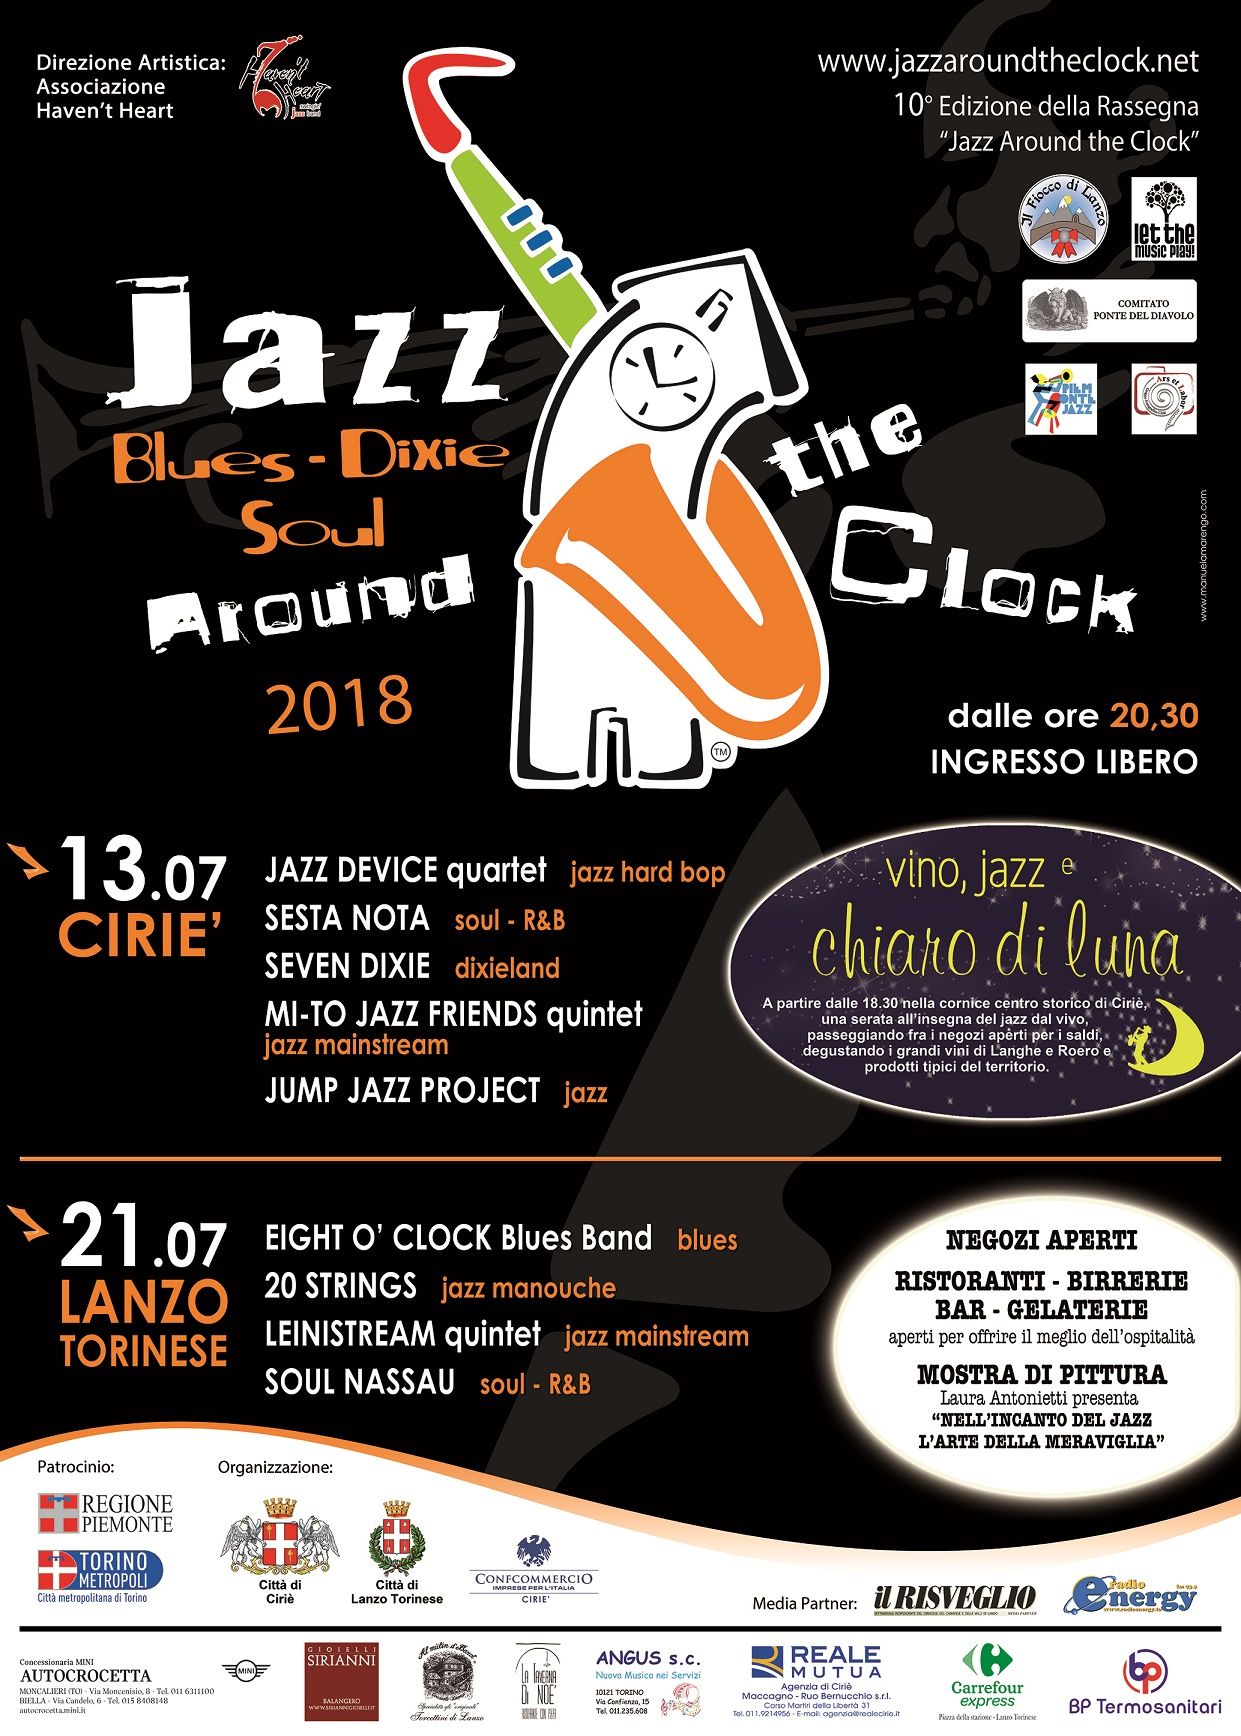 Jazz_around_the_clock_cirie%20-%20lanzo_torinese